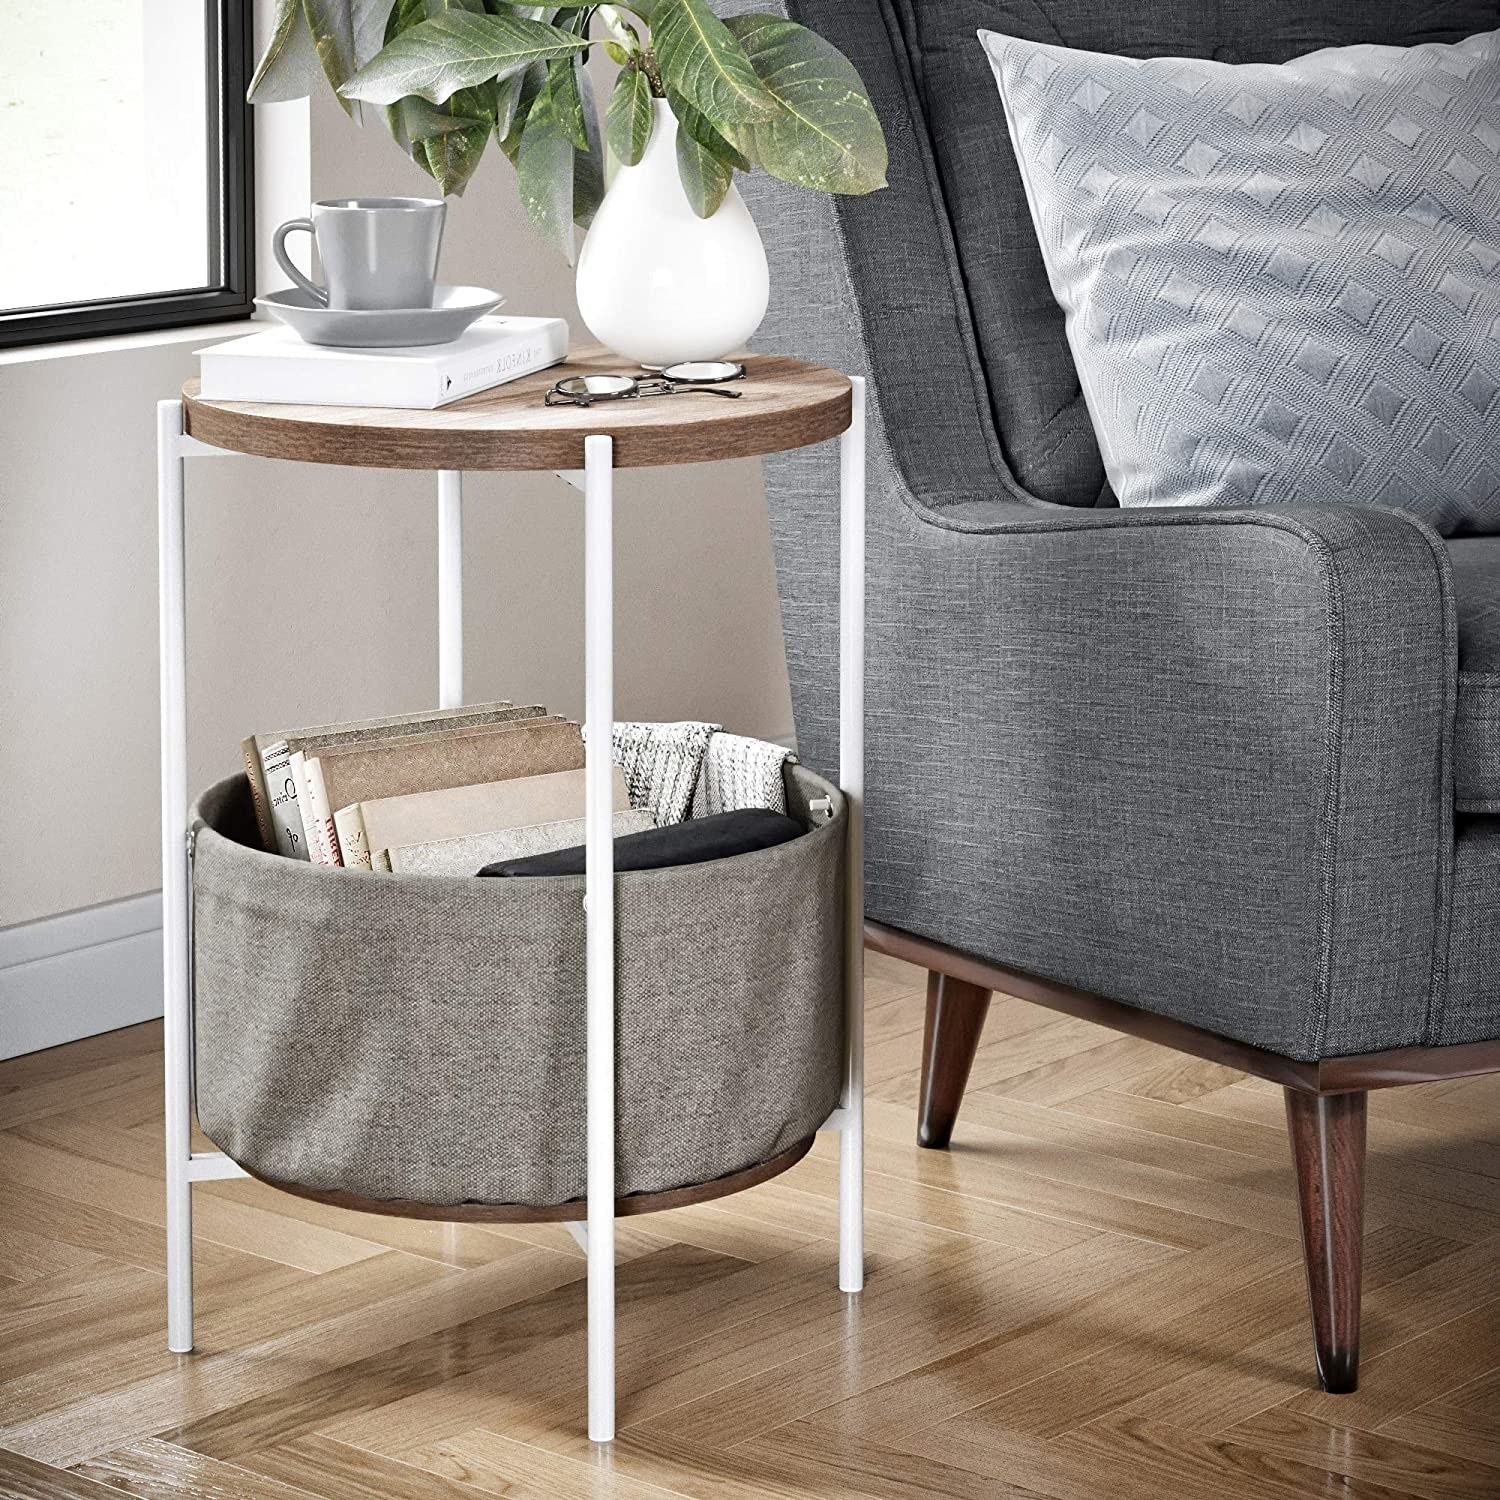 The circular side table with wood-like top, white legs, and a grey fabric bin with books and a blanket in it